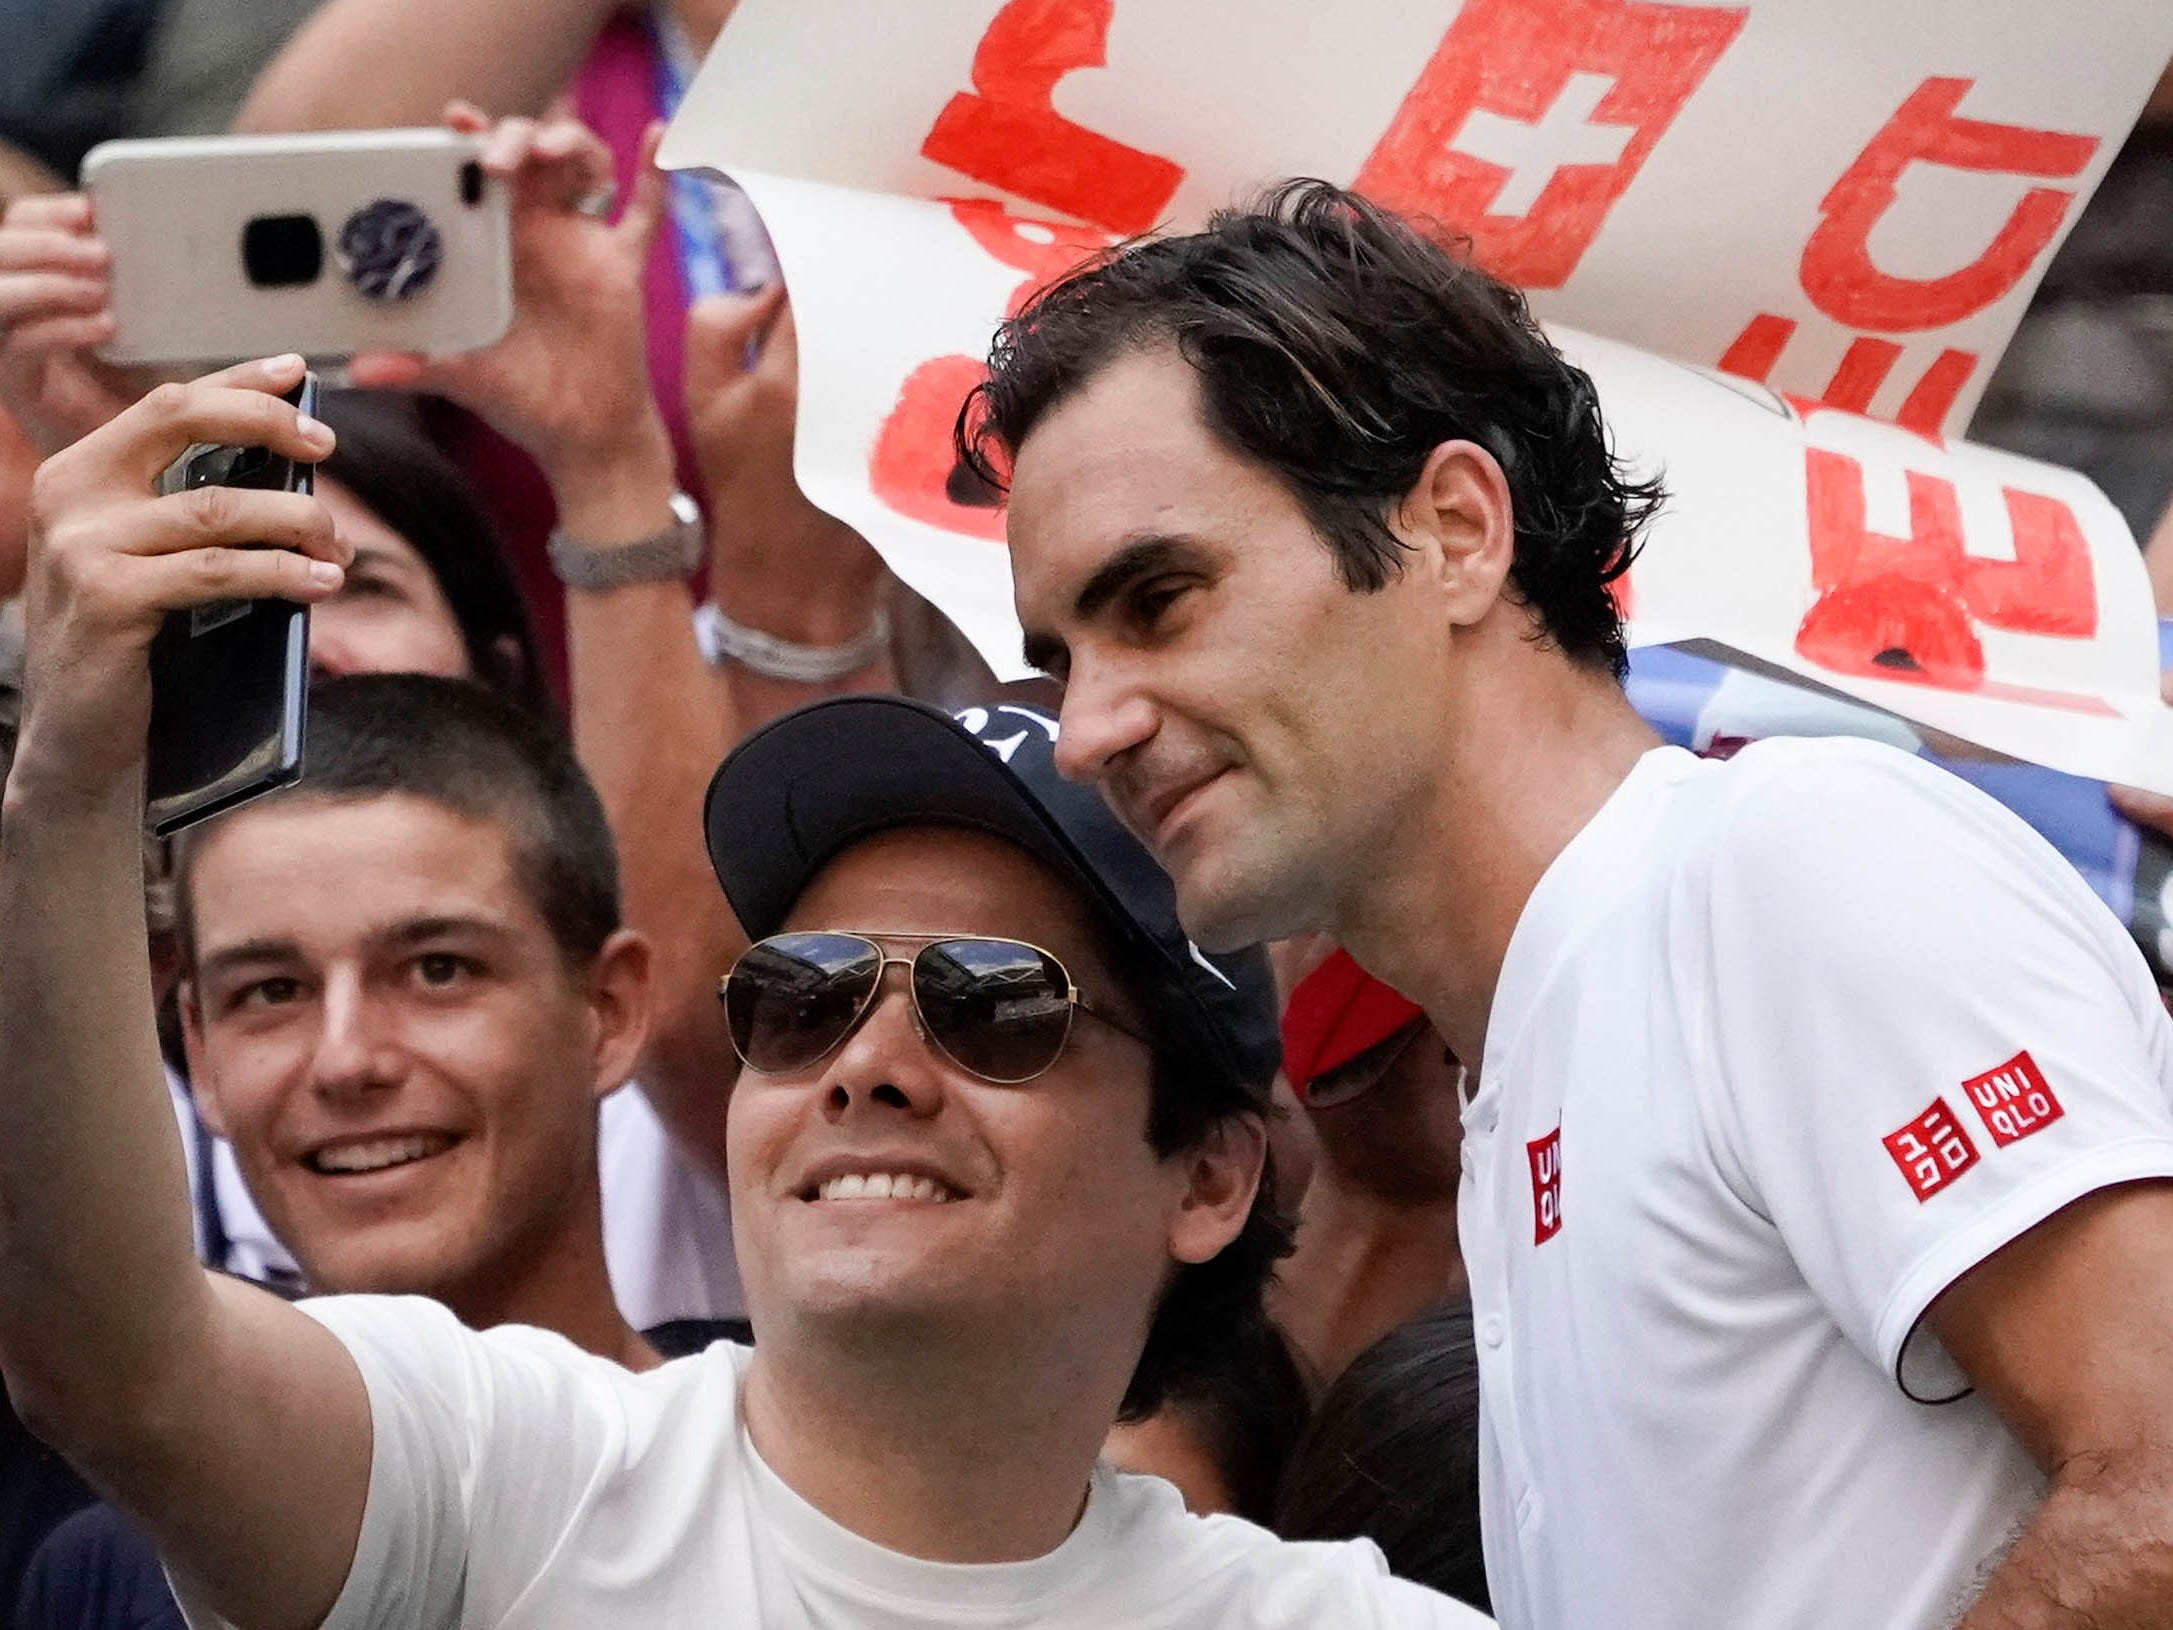 Roger Federer poses with a fan for a selfie after beating Nick Kyrgios in the third round.